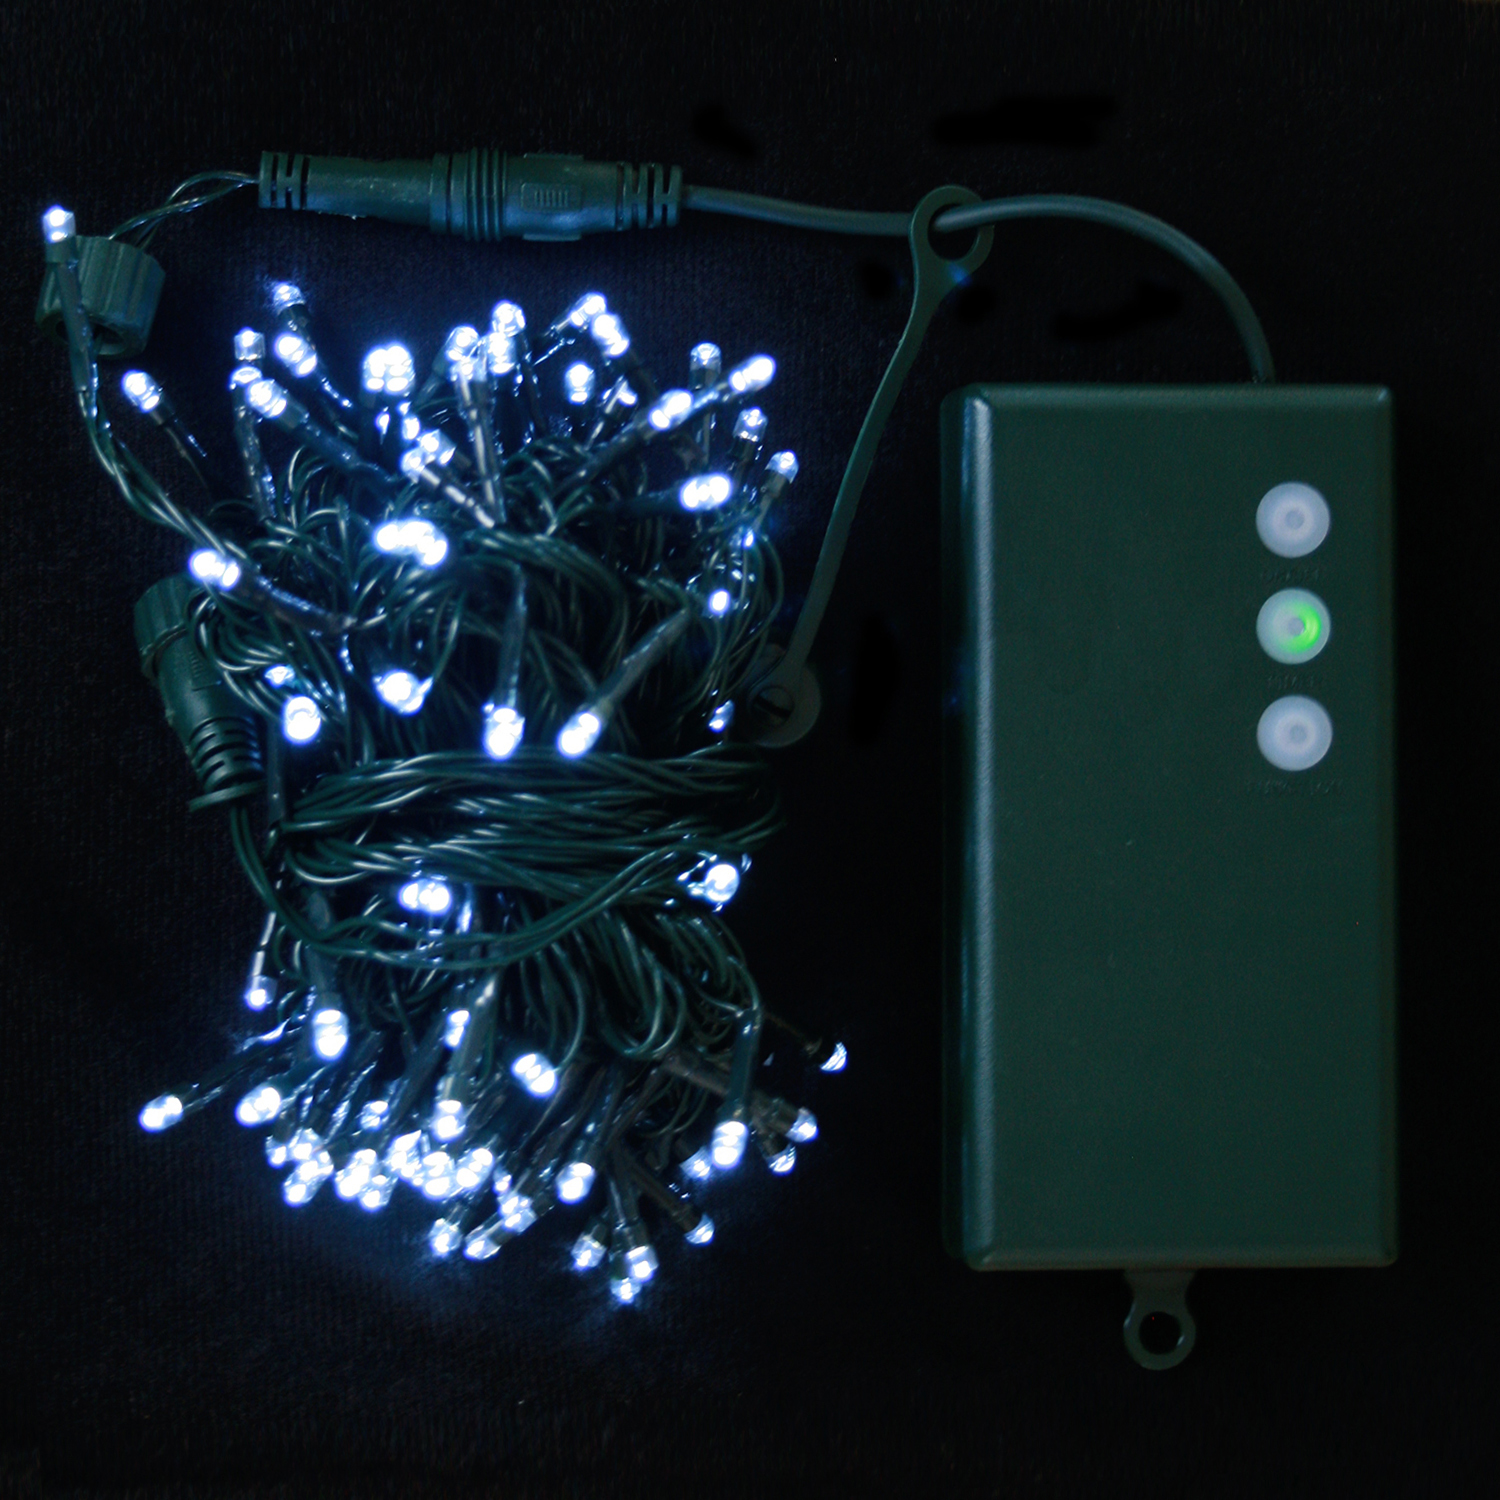 Led String Lights With Battery : Lights.com String Lights Christmas Lights Cool White 100 LED Connectable Battery String Lights